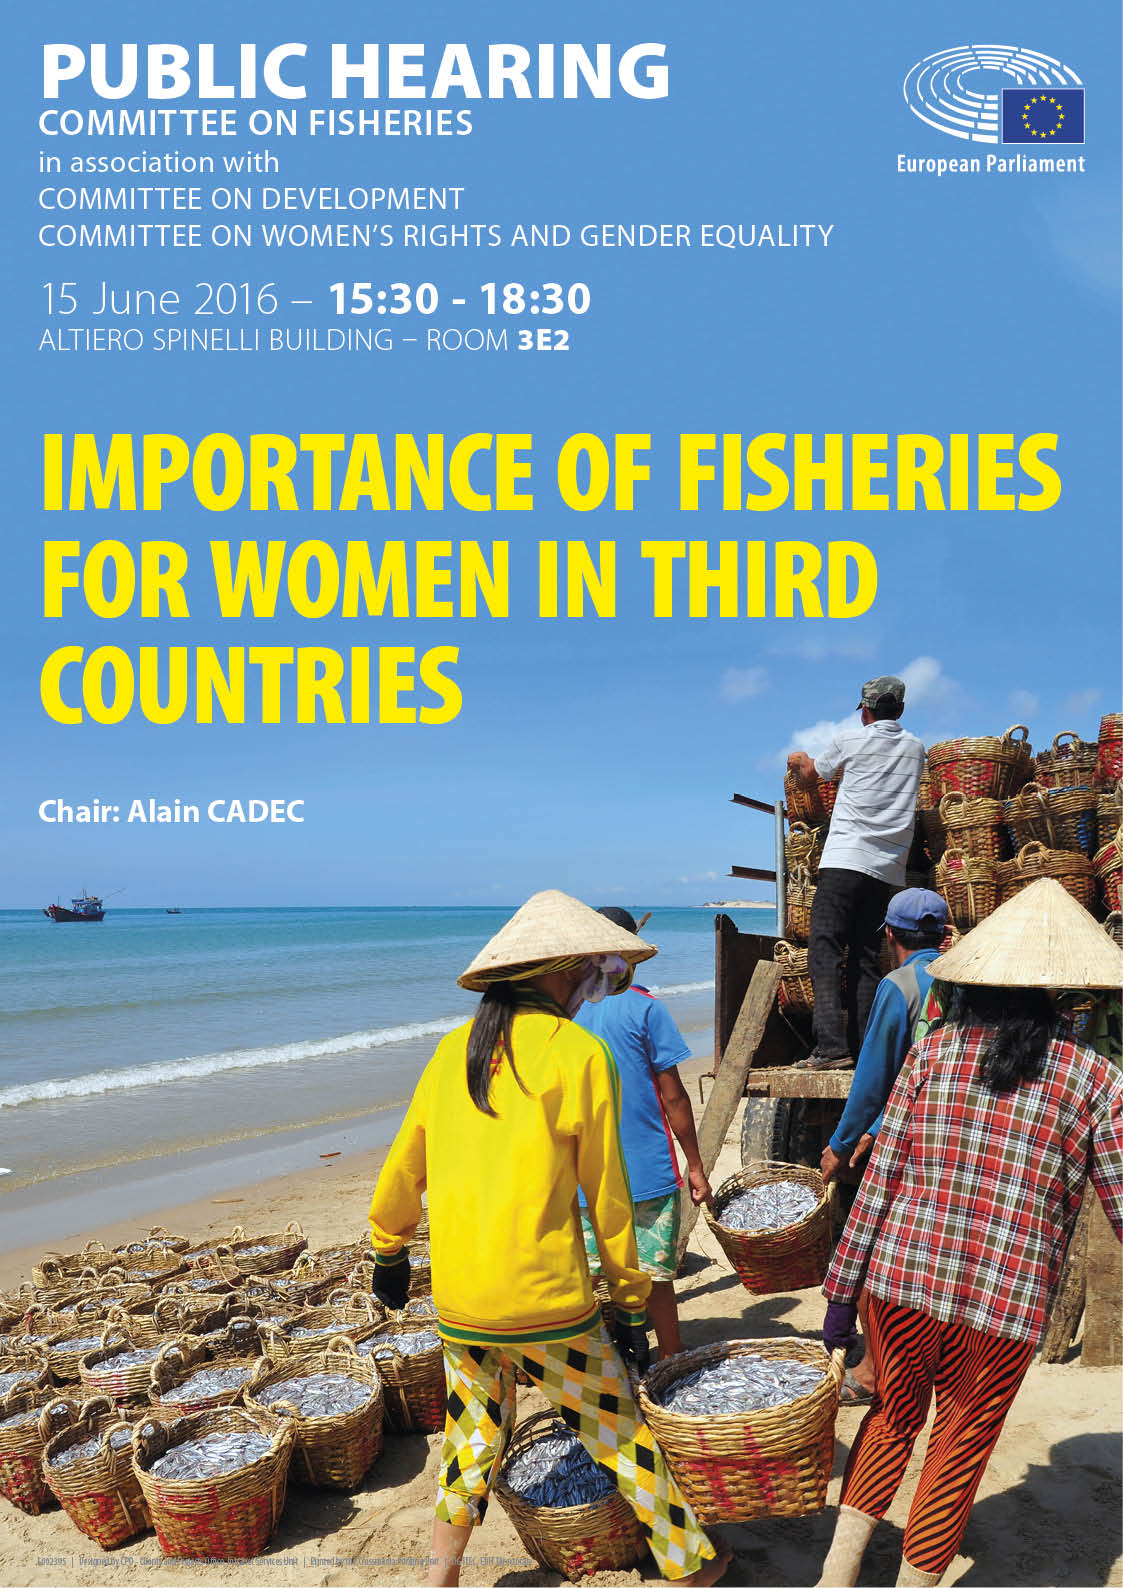 Poster for the public hearing on the importance of fisheries for women in third countries